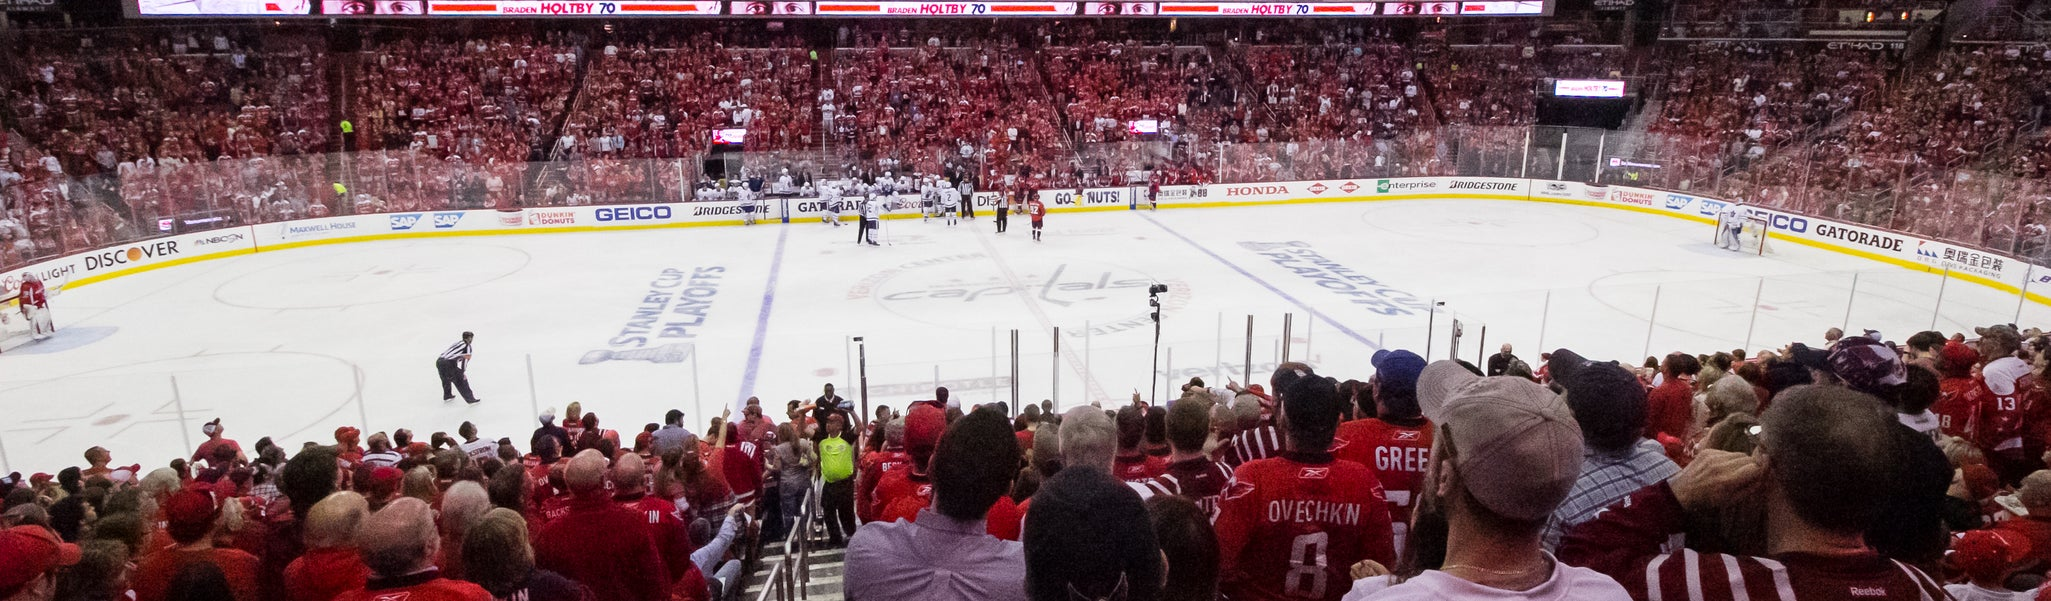 Seat view from LL Center Preferred 111 at Capital One Arena